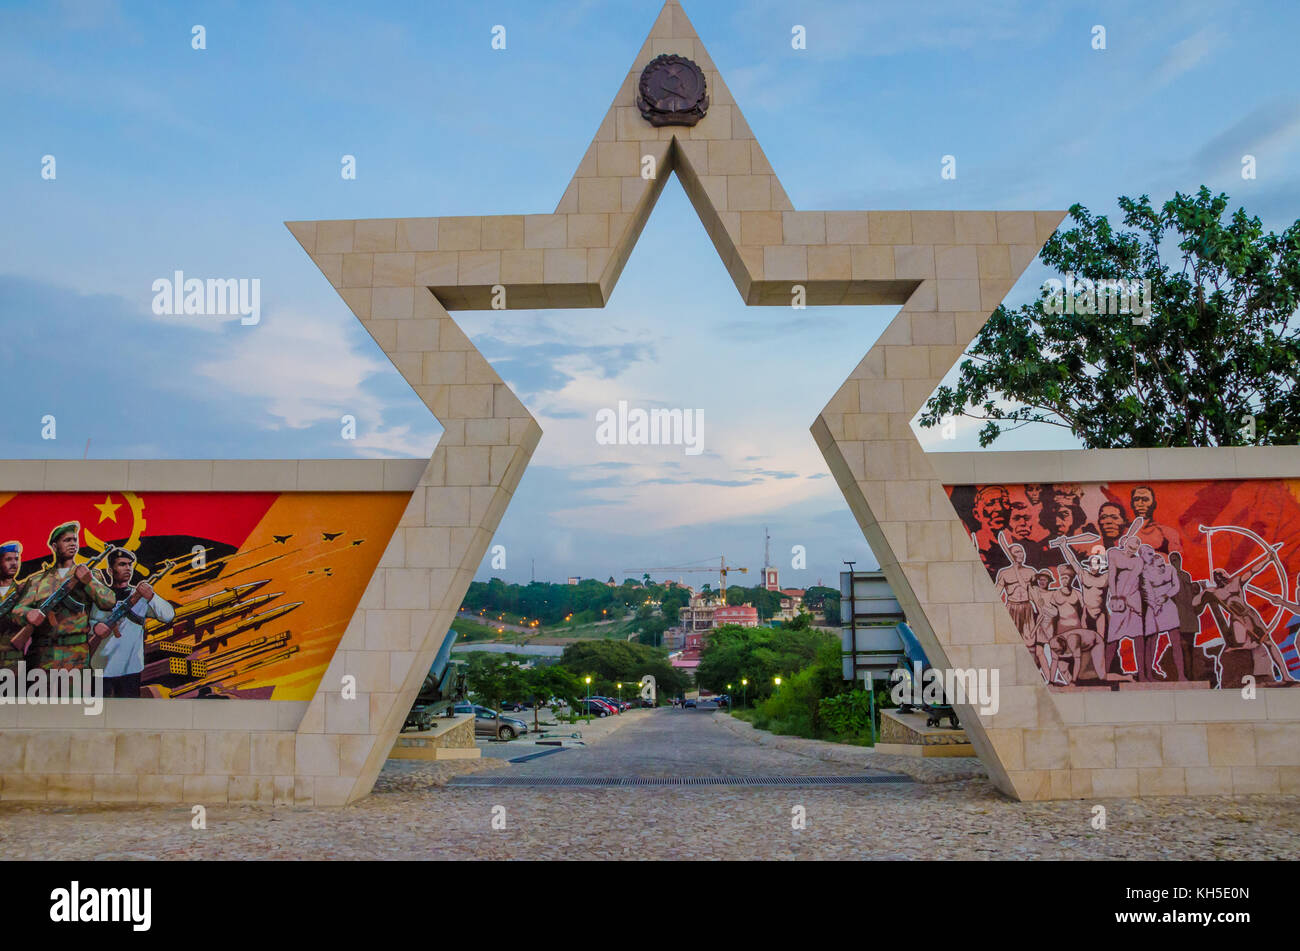 LUANDA, ANGOLA - APRIL 28 2014: Civil war memorial depicting Angolan flag and soldiers at Fortaleza de Sao Miguel - Stock Image